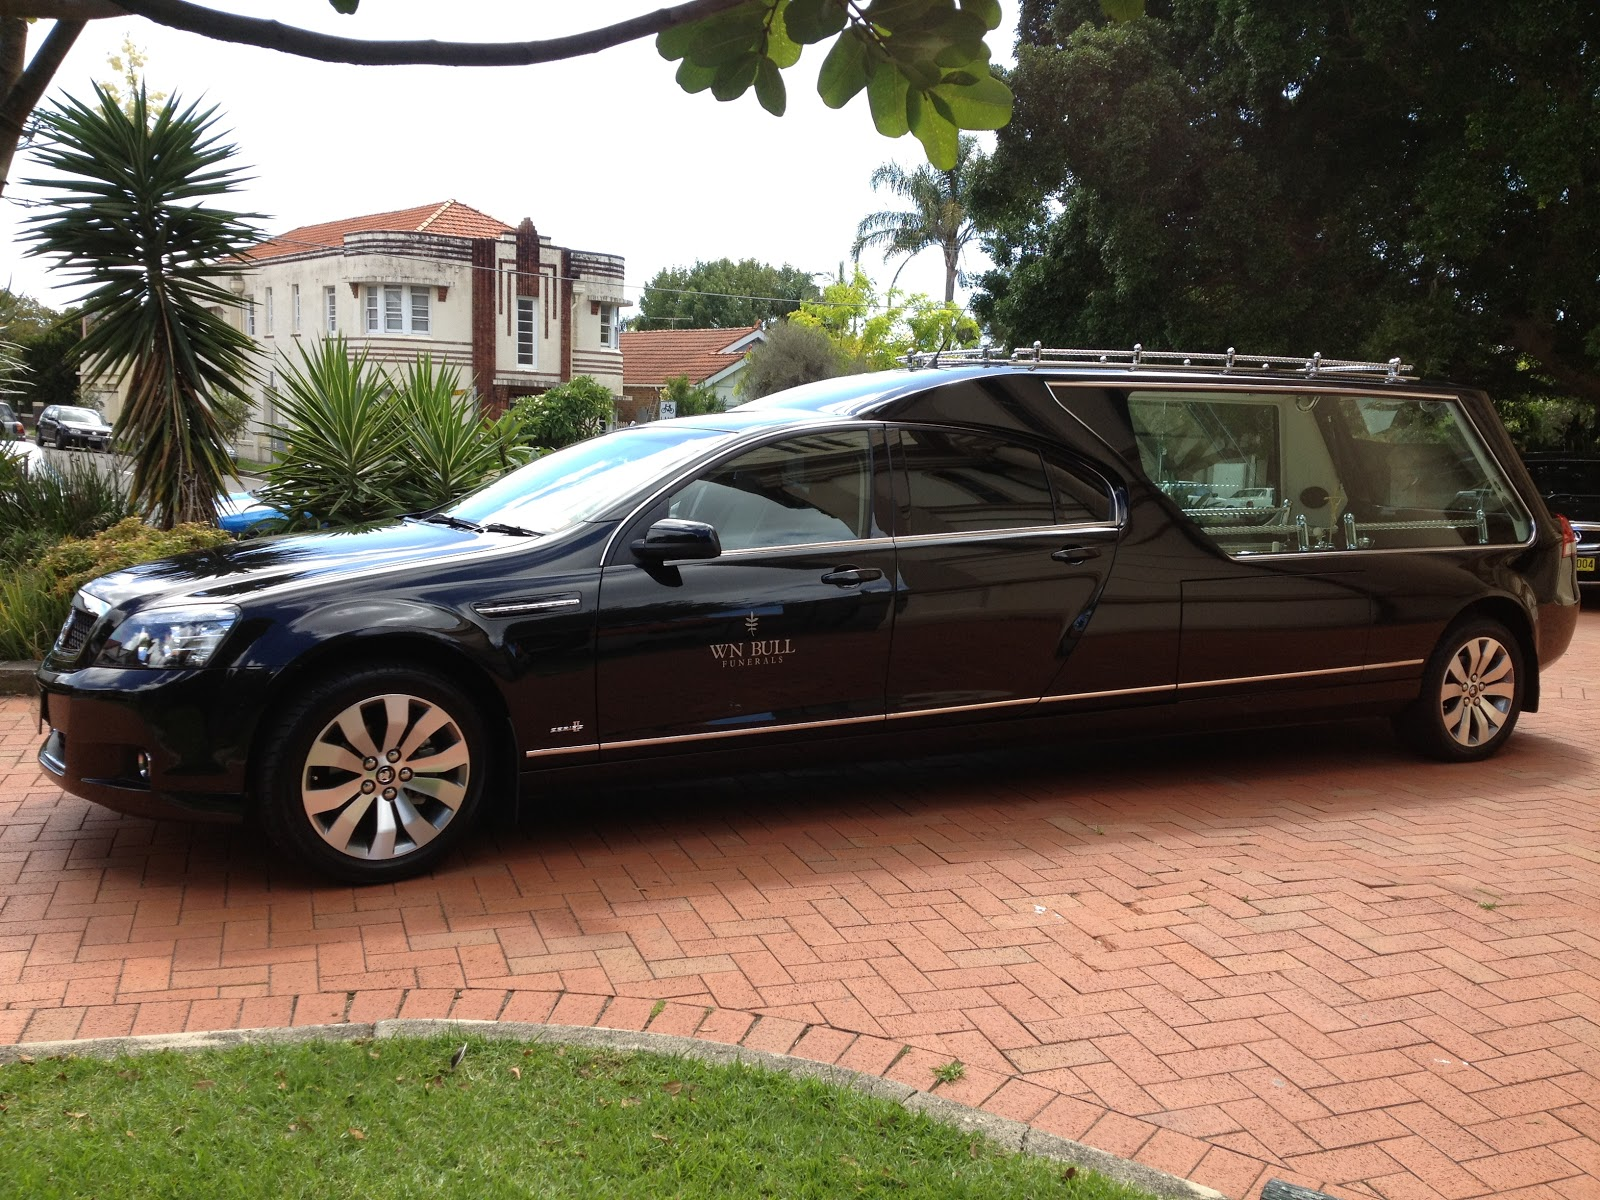 Different Types Of Lexus Cars >> The Other Side Of Funerals: Working Funerals - The Hearse Revealed